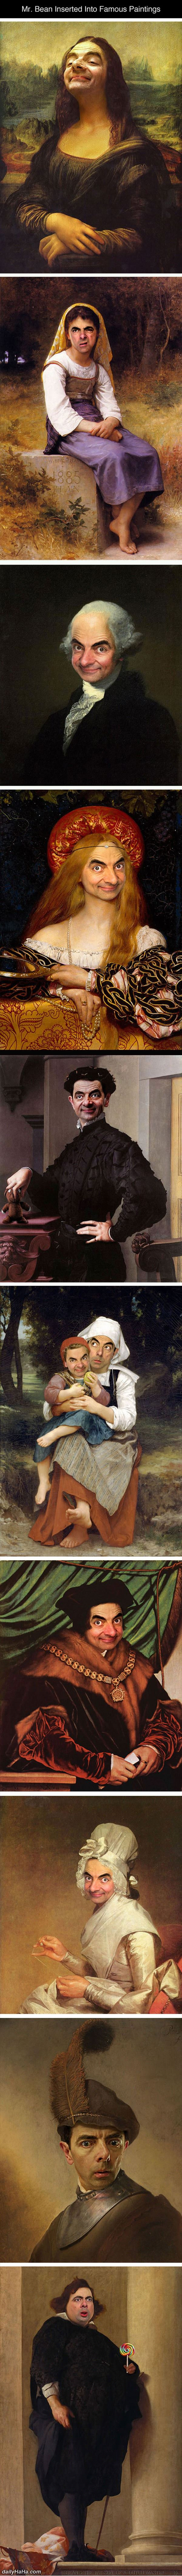 my bean in famous paintings funny picture